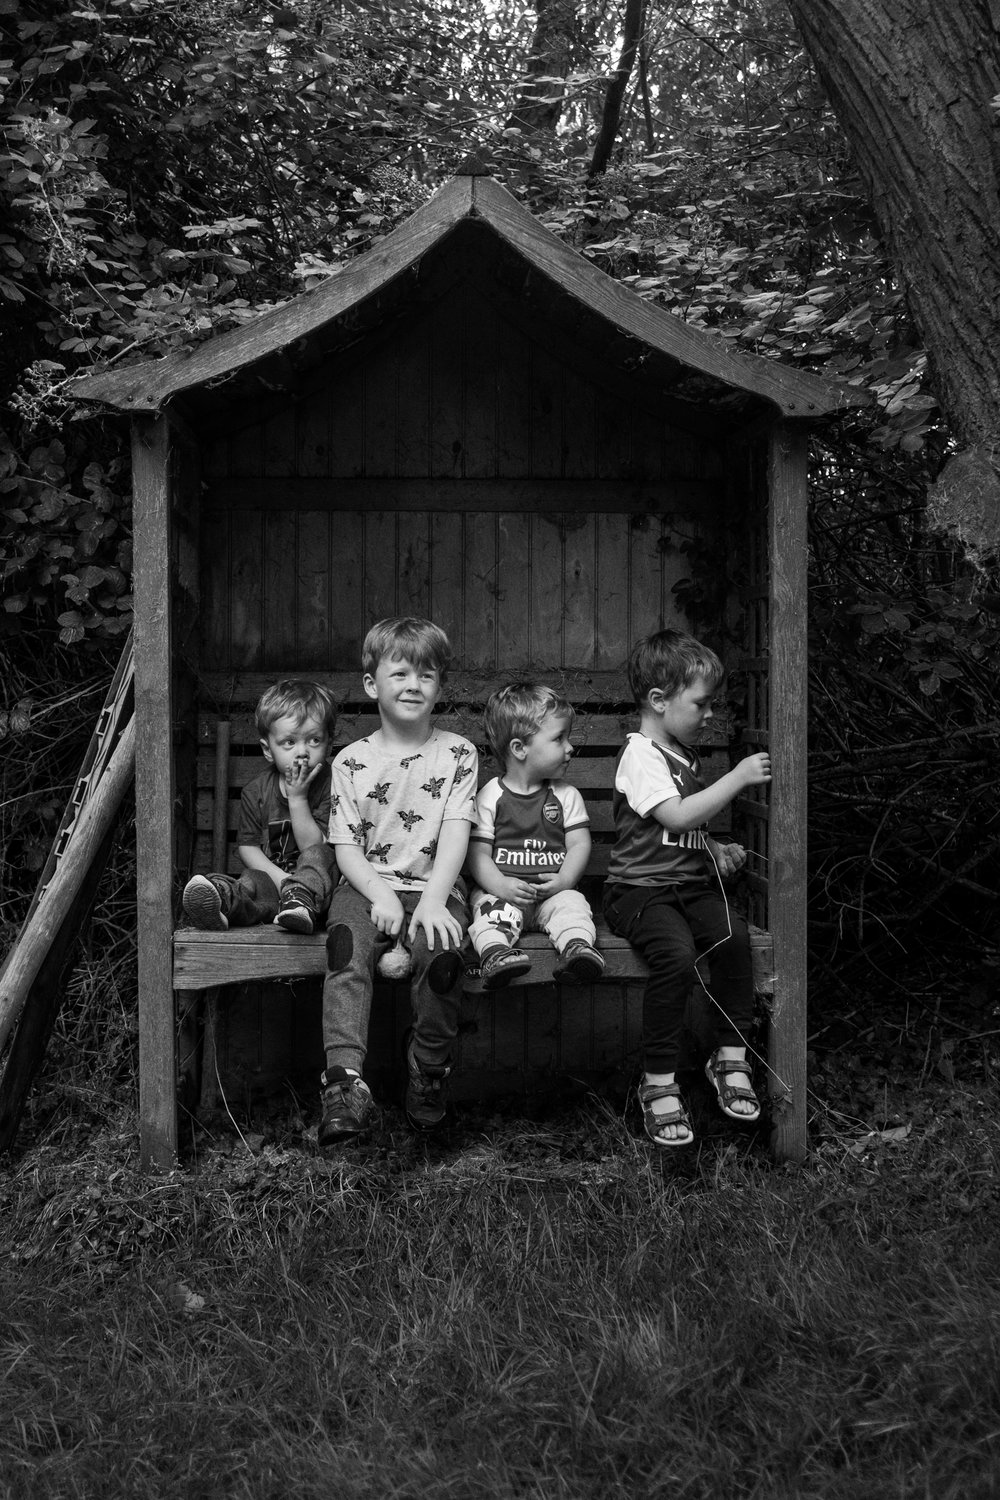 The boys. Shot on the Fujifilm X-E1 with post in Lightroom Classic